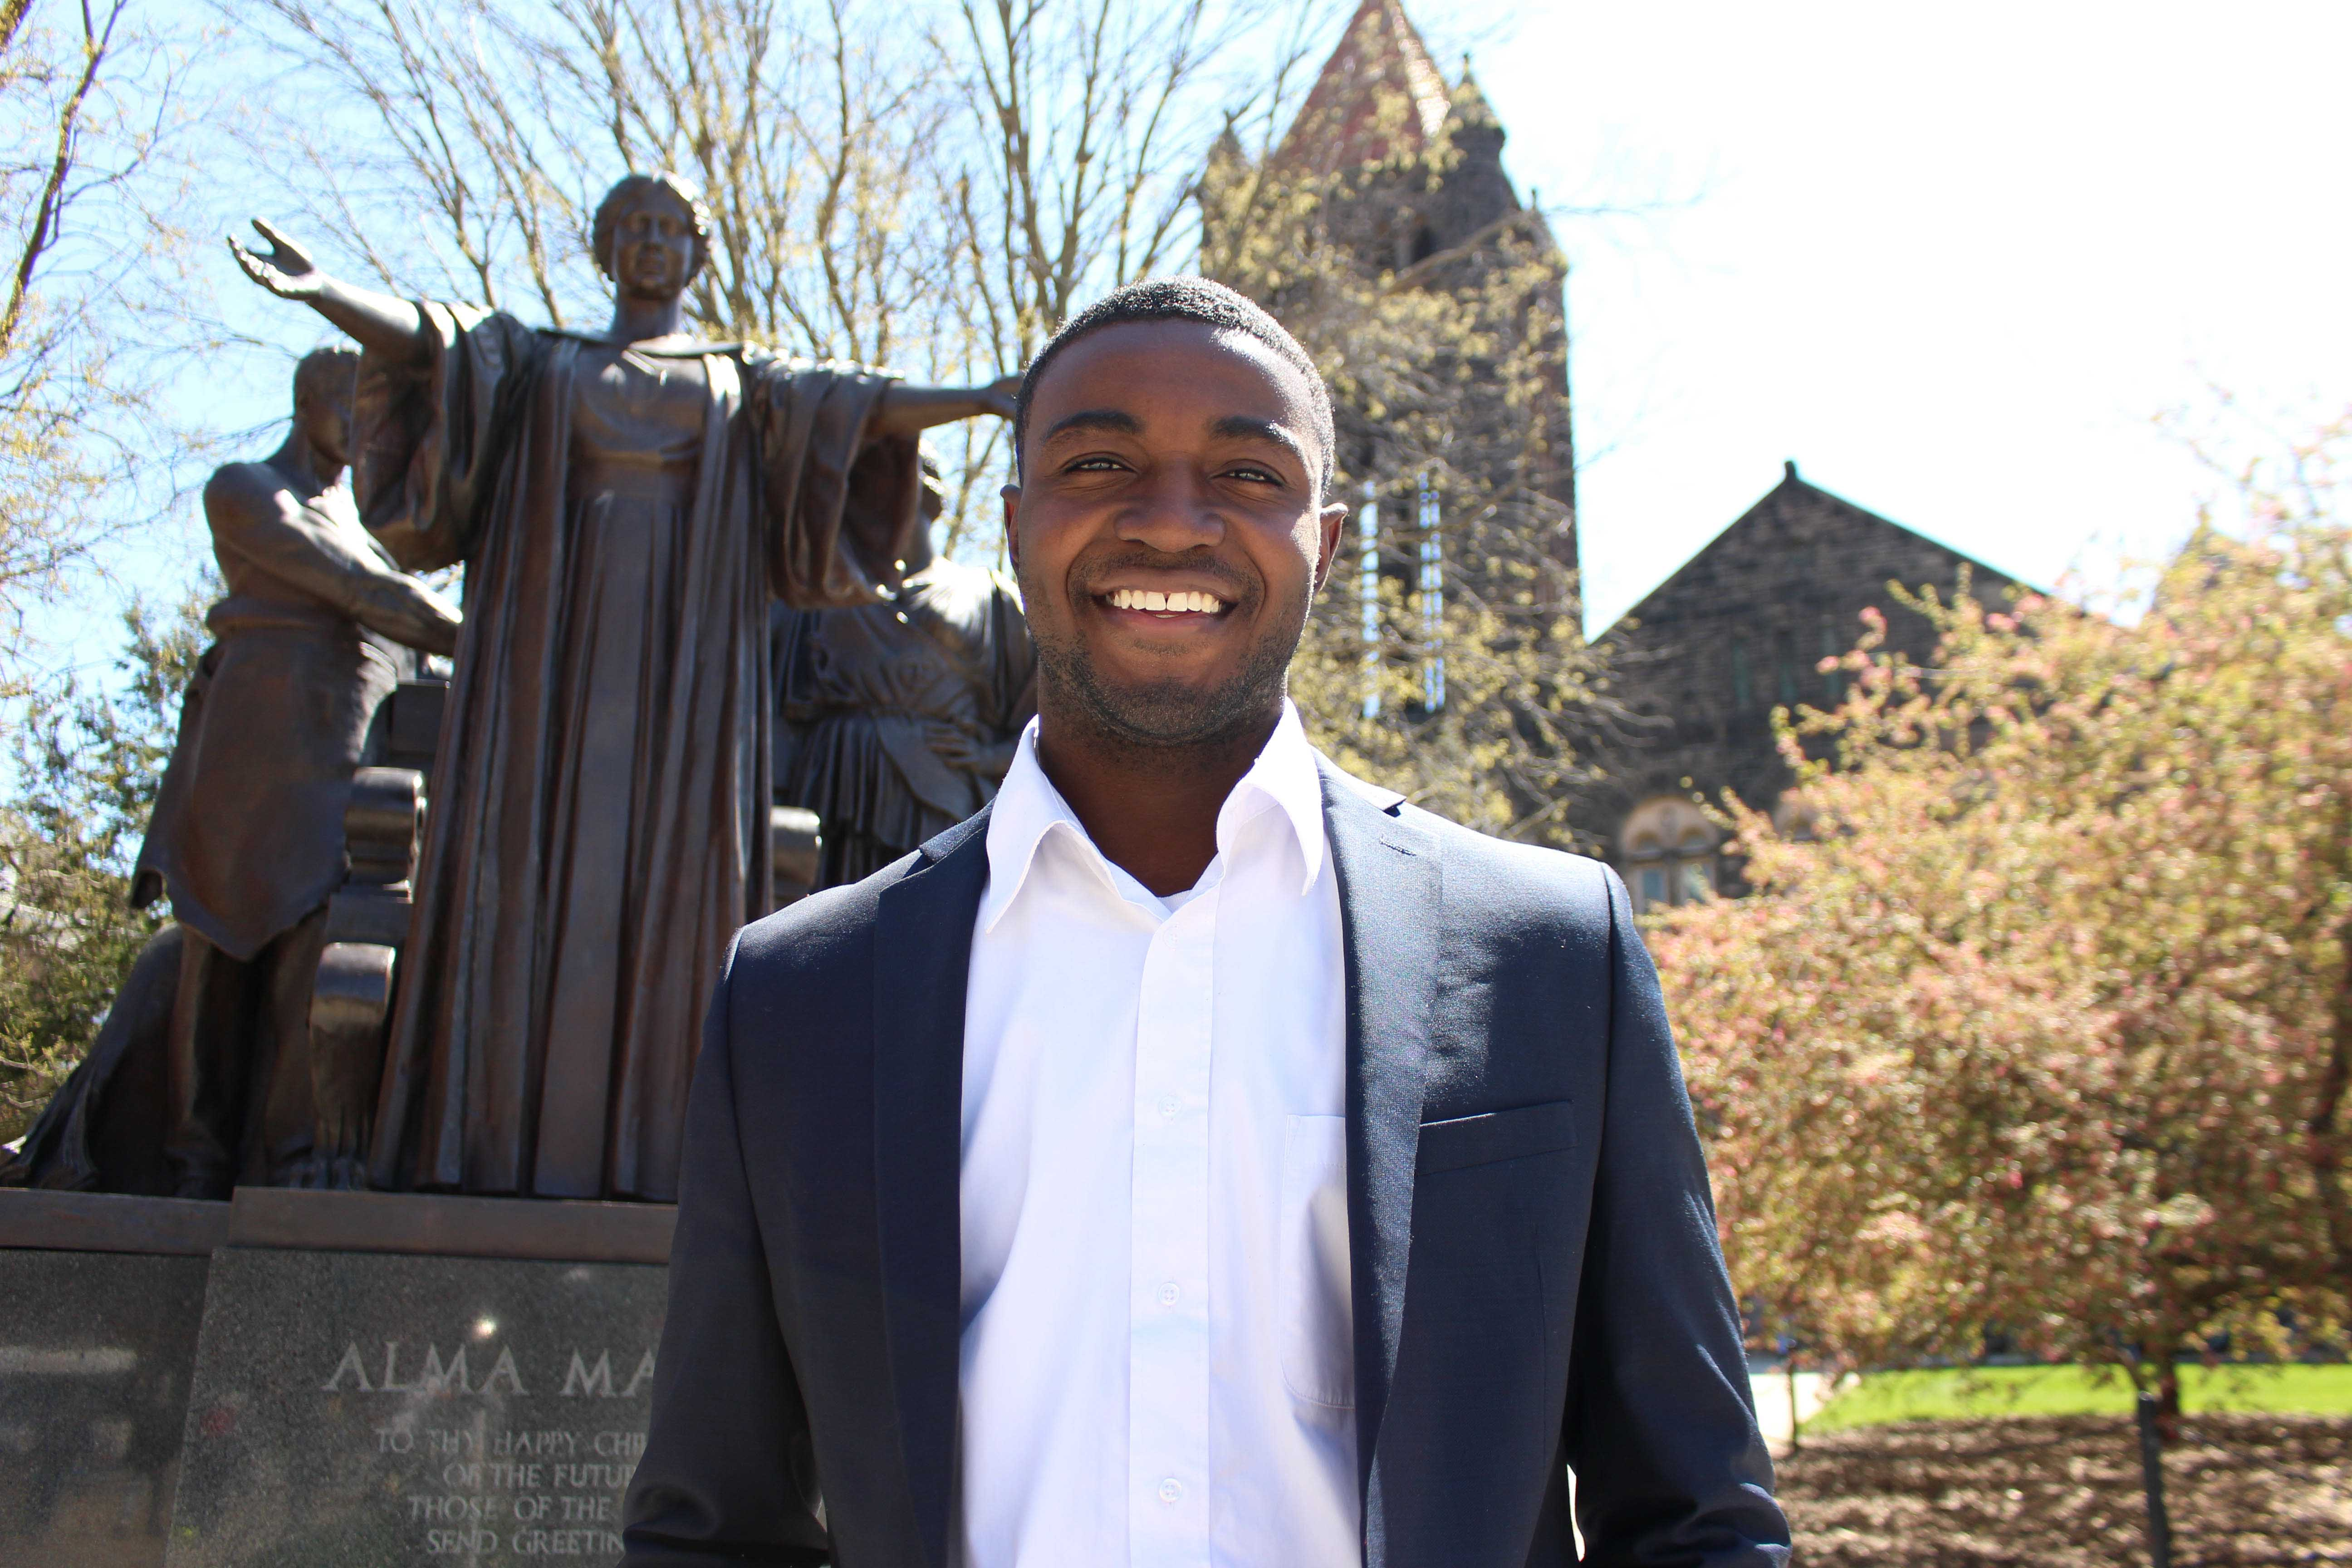 Newly elected student body president Ron Lewis in front of the Alma Mater on Wednesday, Apr. 13